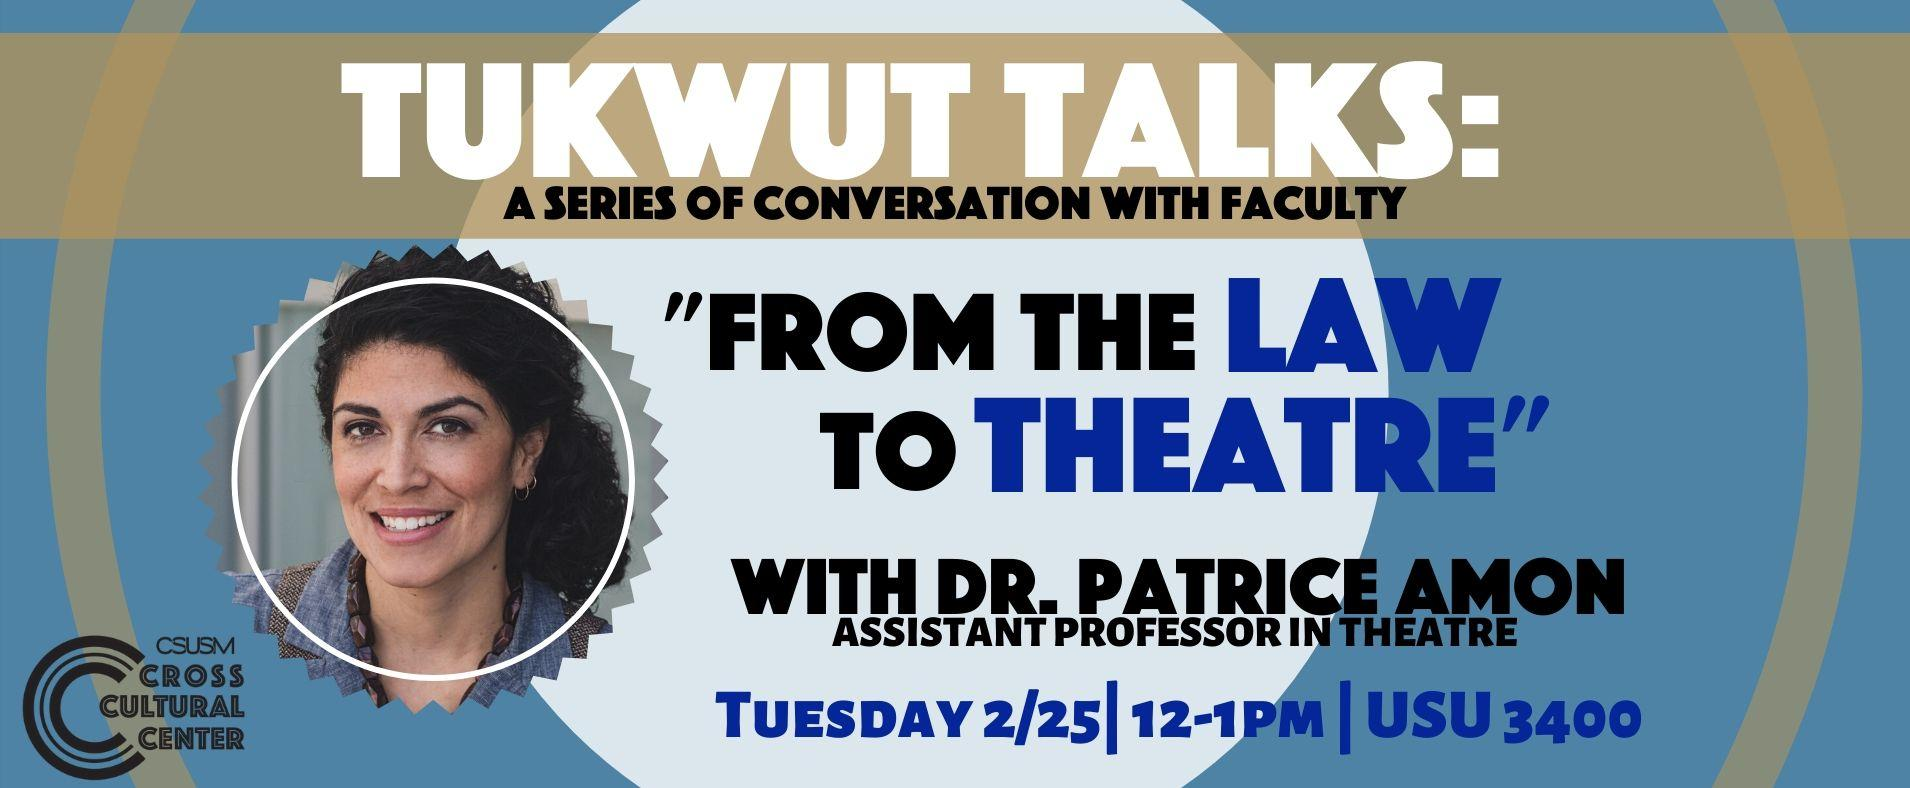 Tukwut Talks - From the Law to Theatre featuring Dr. Patrice Amon - Tuesday, February 25, 2020 - 12pm to 1pm - USU 3400